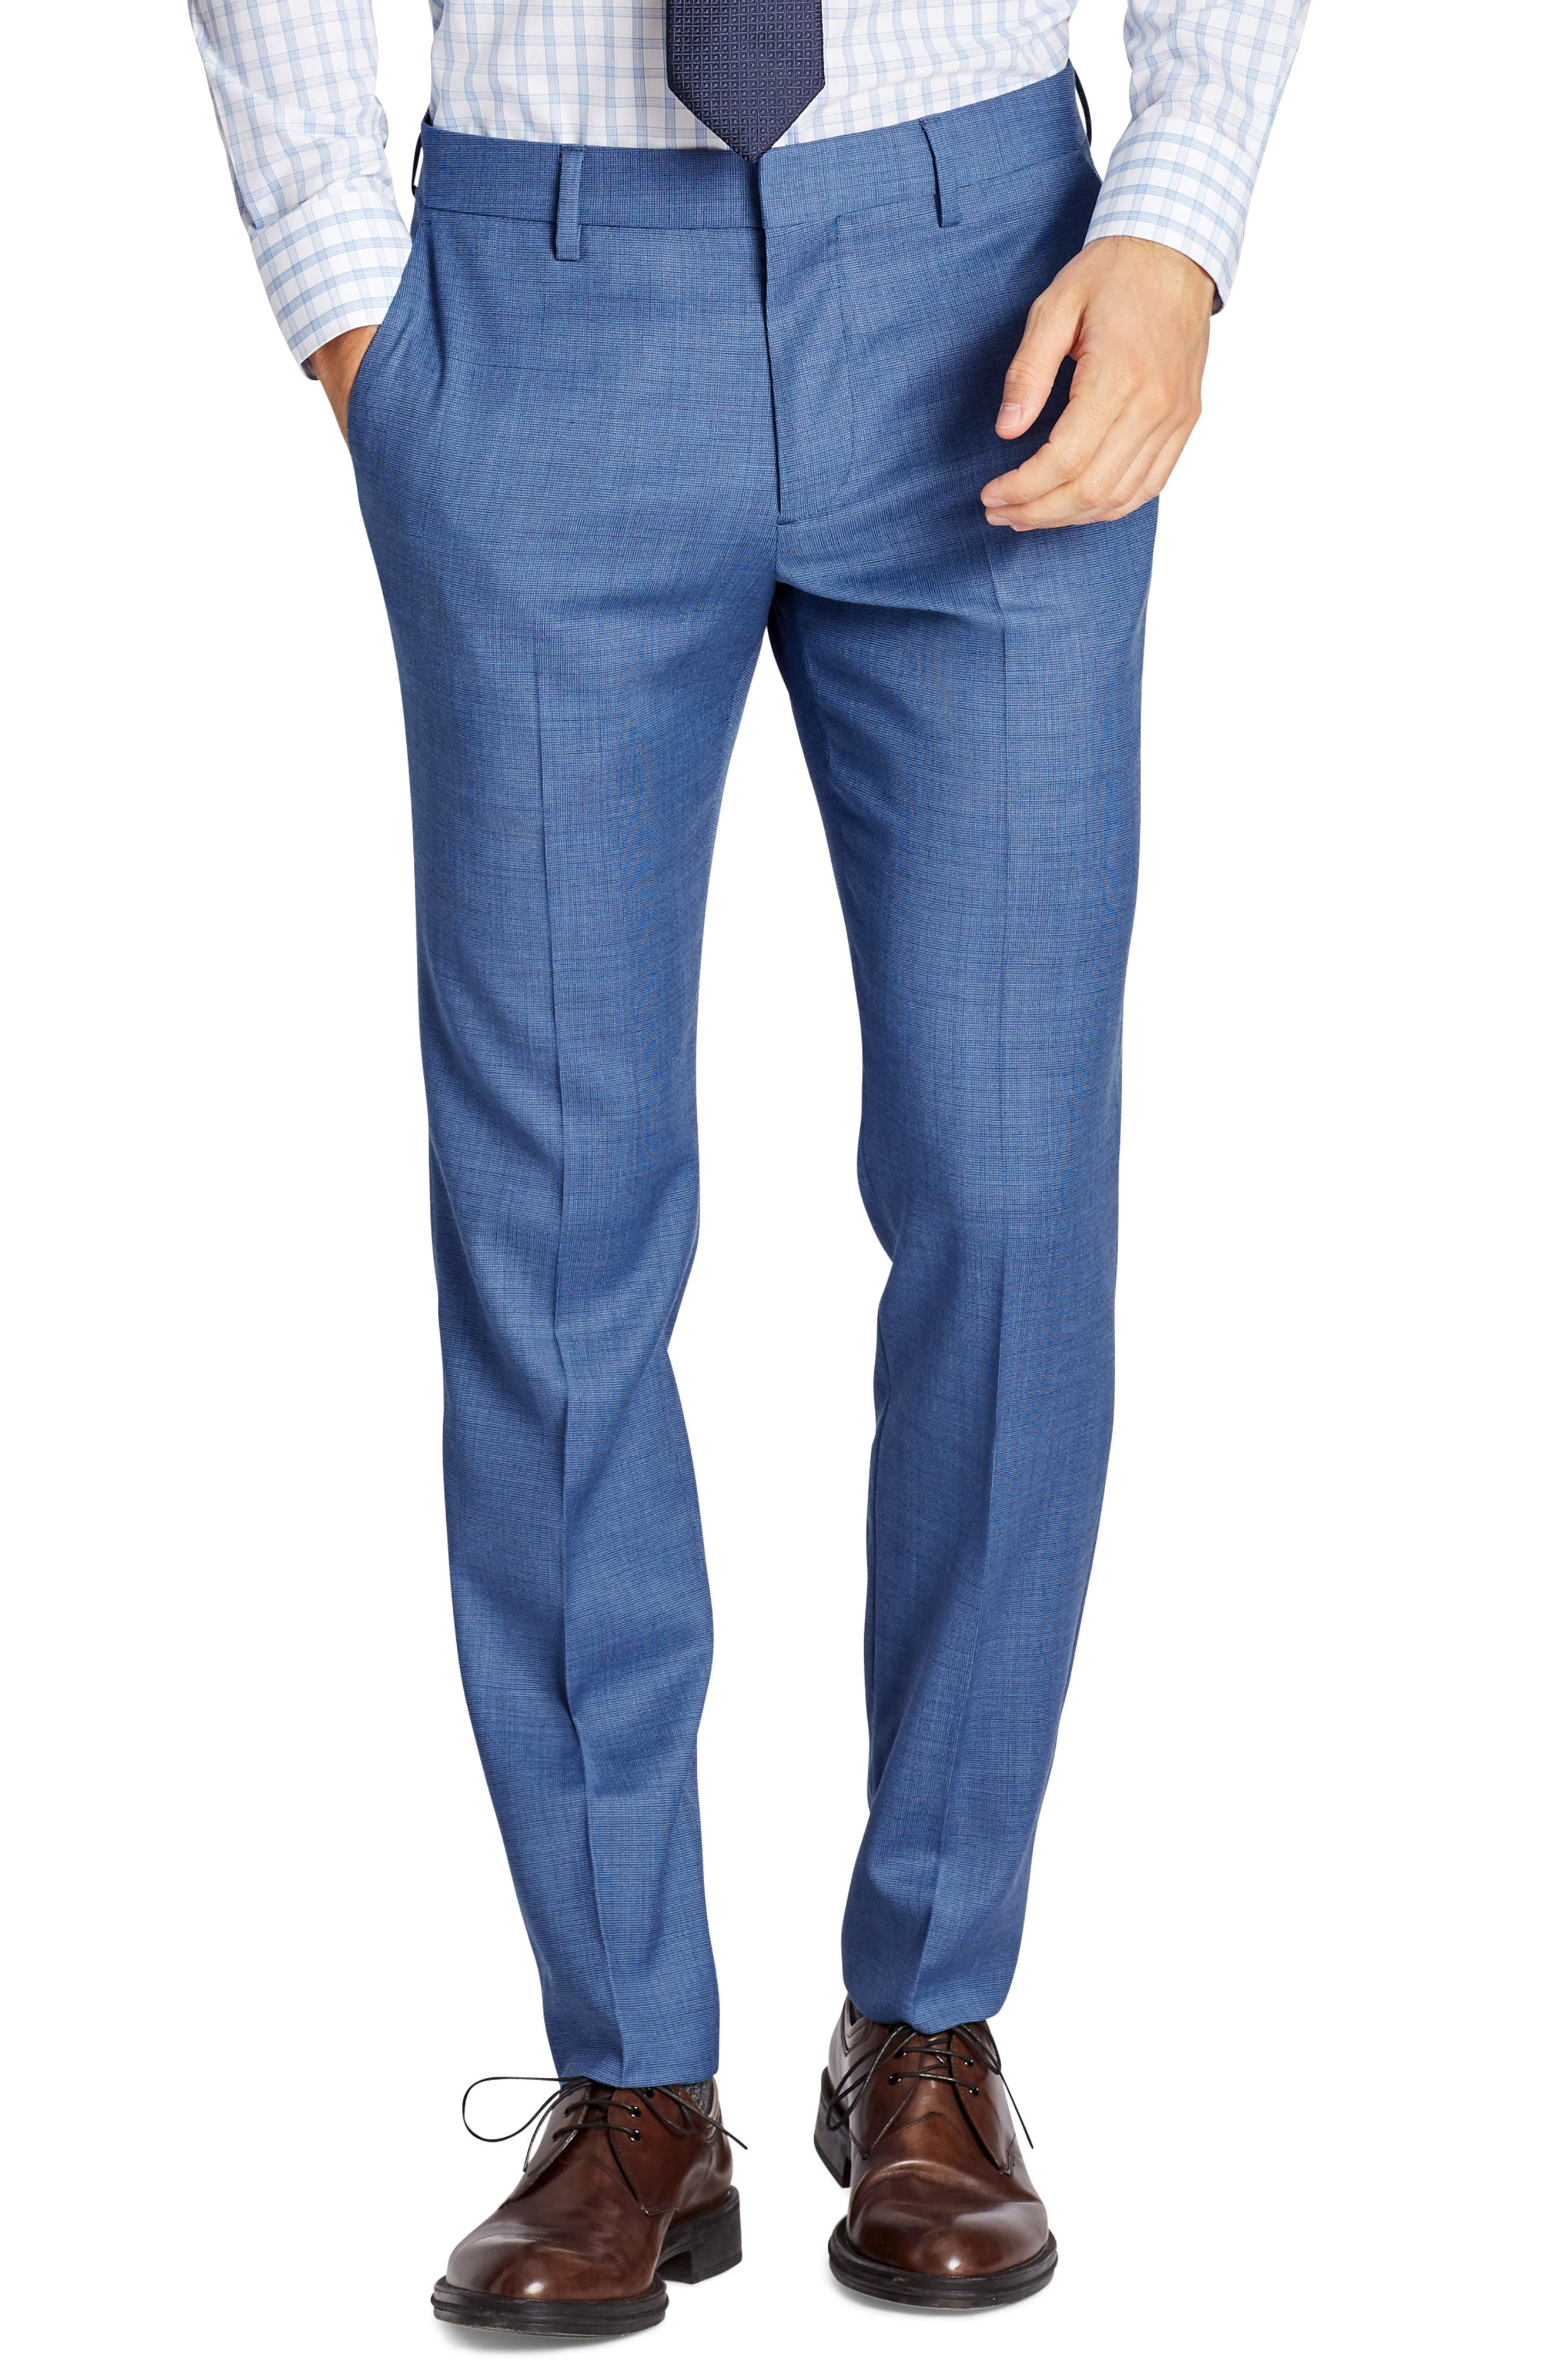 BONOBOS Jetsetter Flat Front Solid Stretch Wool Trousers, Main, color, BRIGHTER BLUE